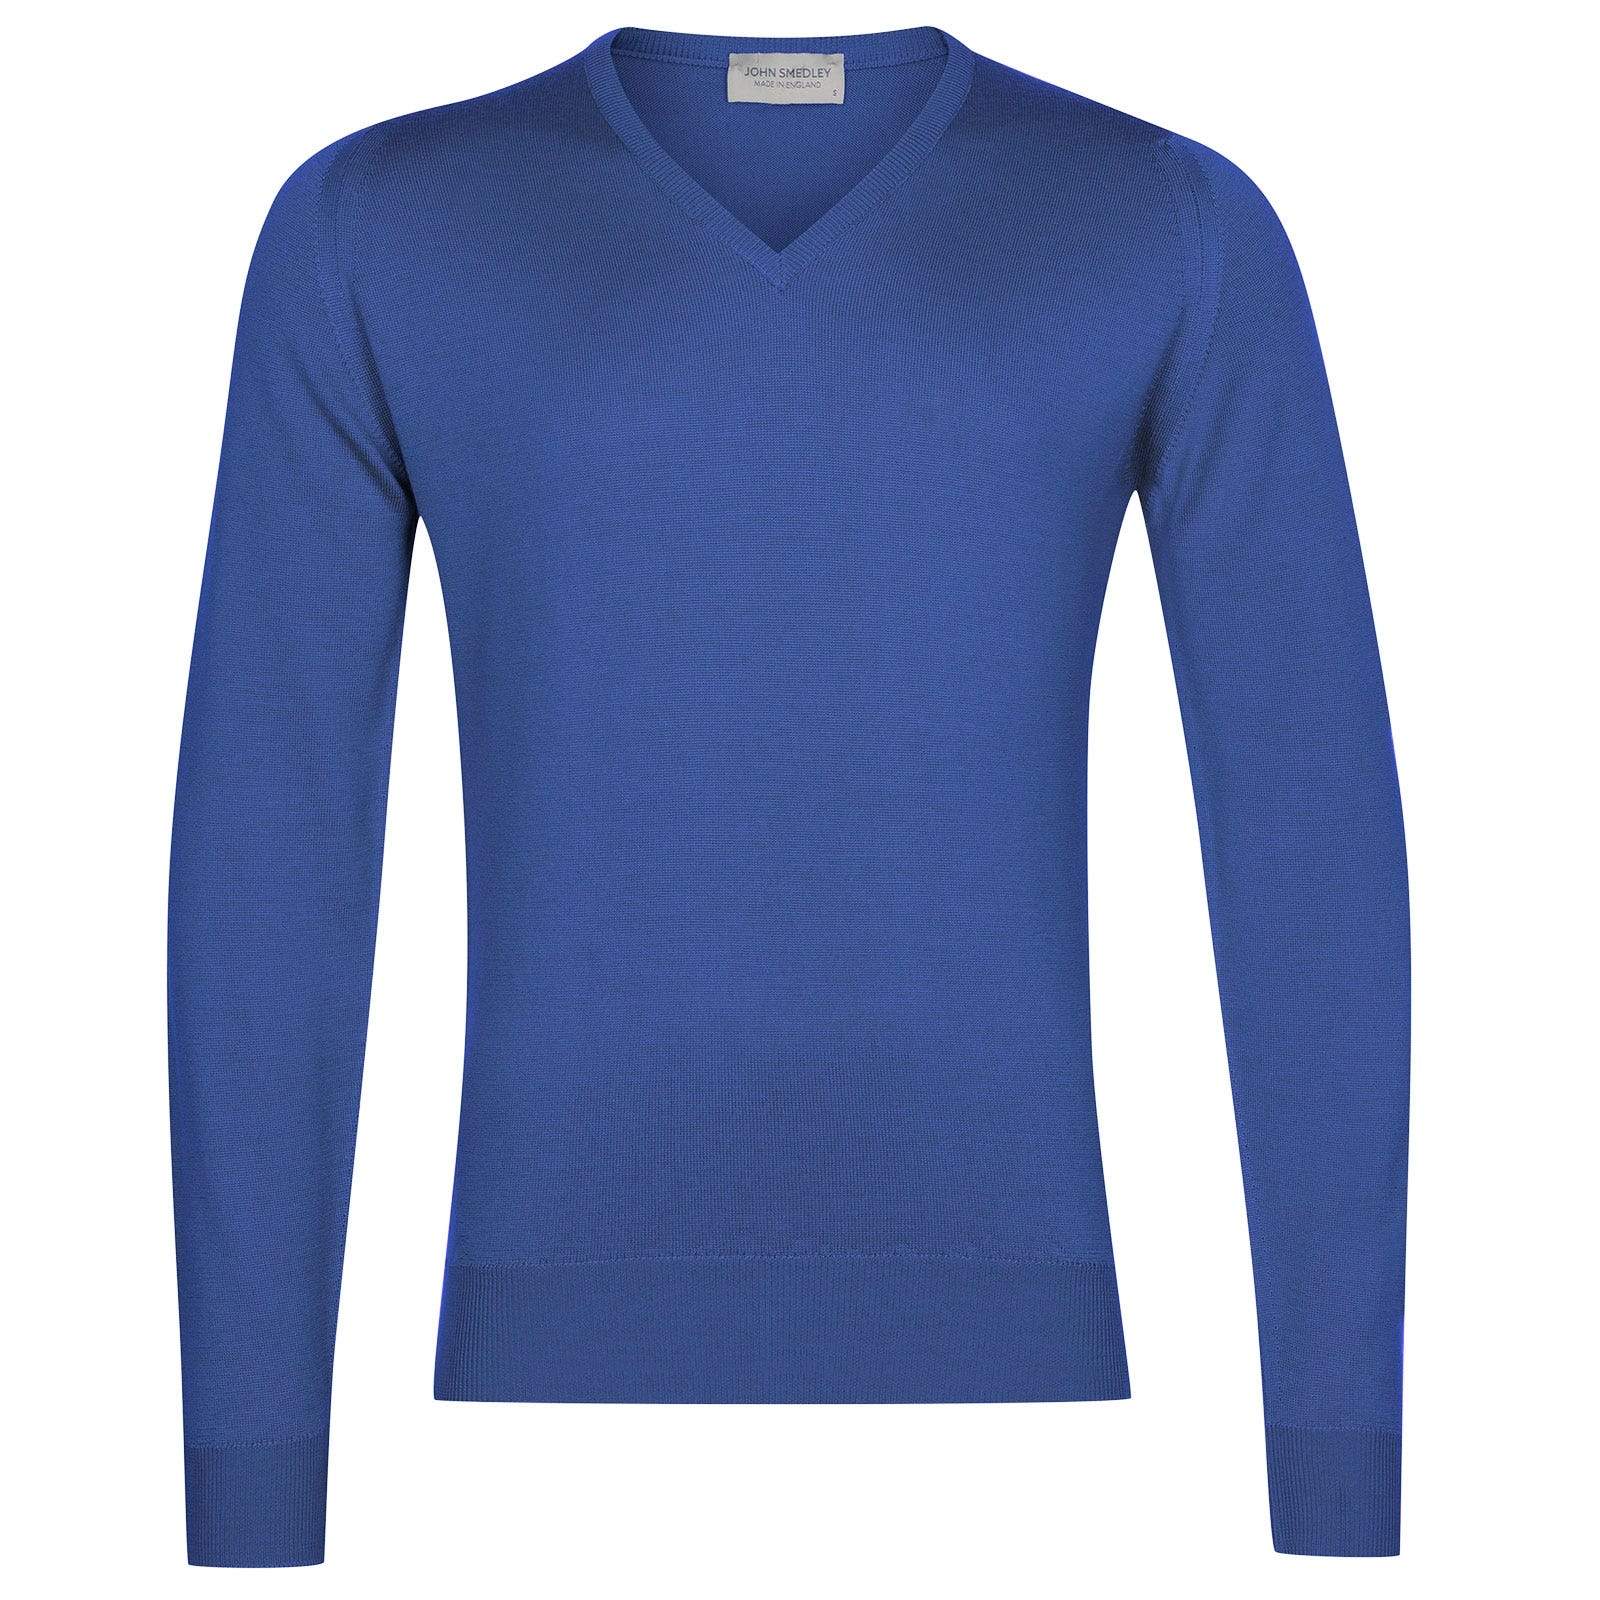 John Smedley Blenheim Merino Wool Pullover in Chambray Blue-M